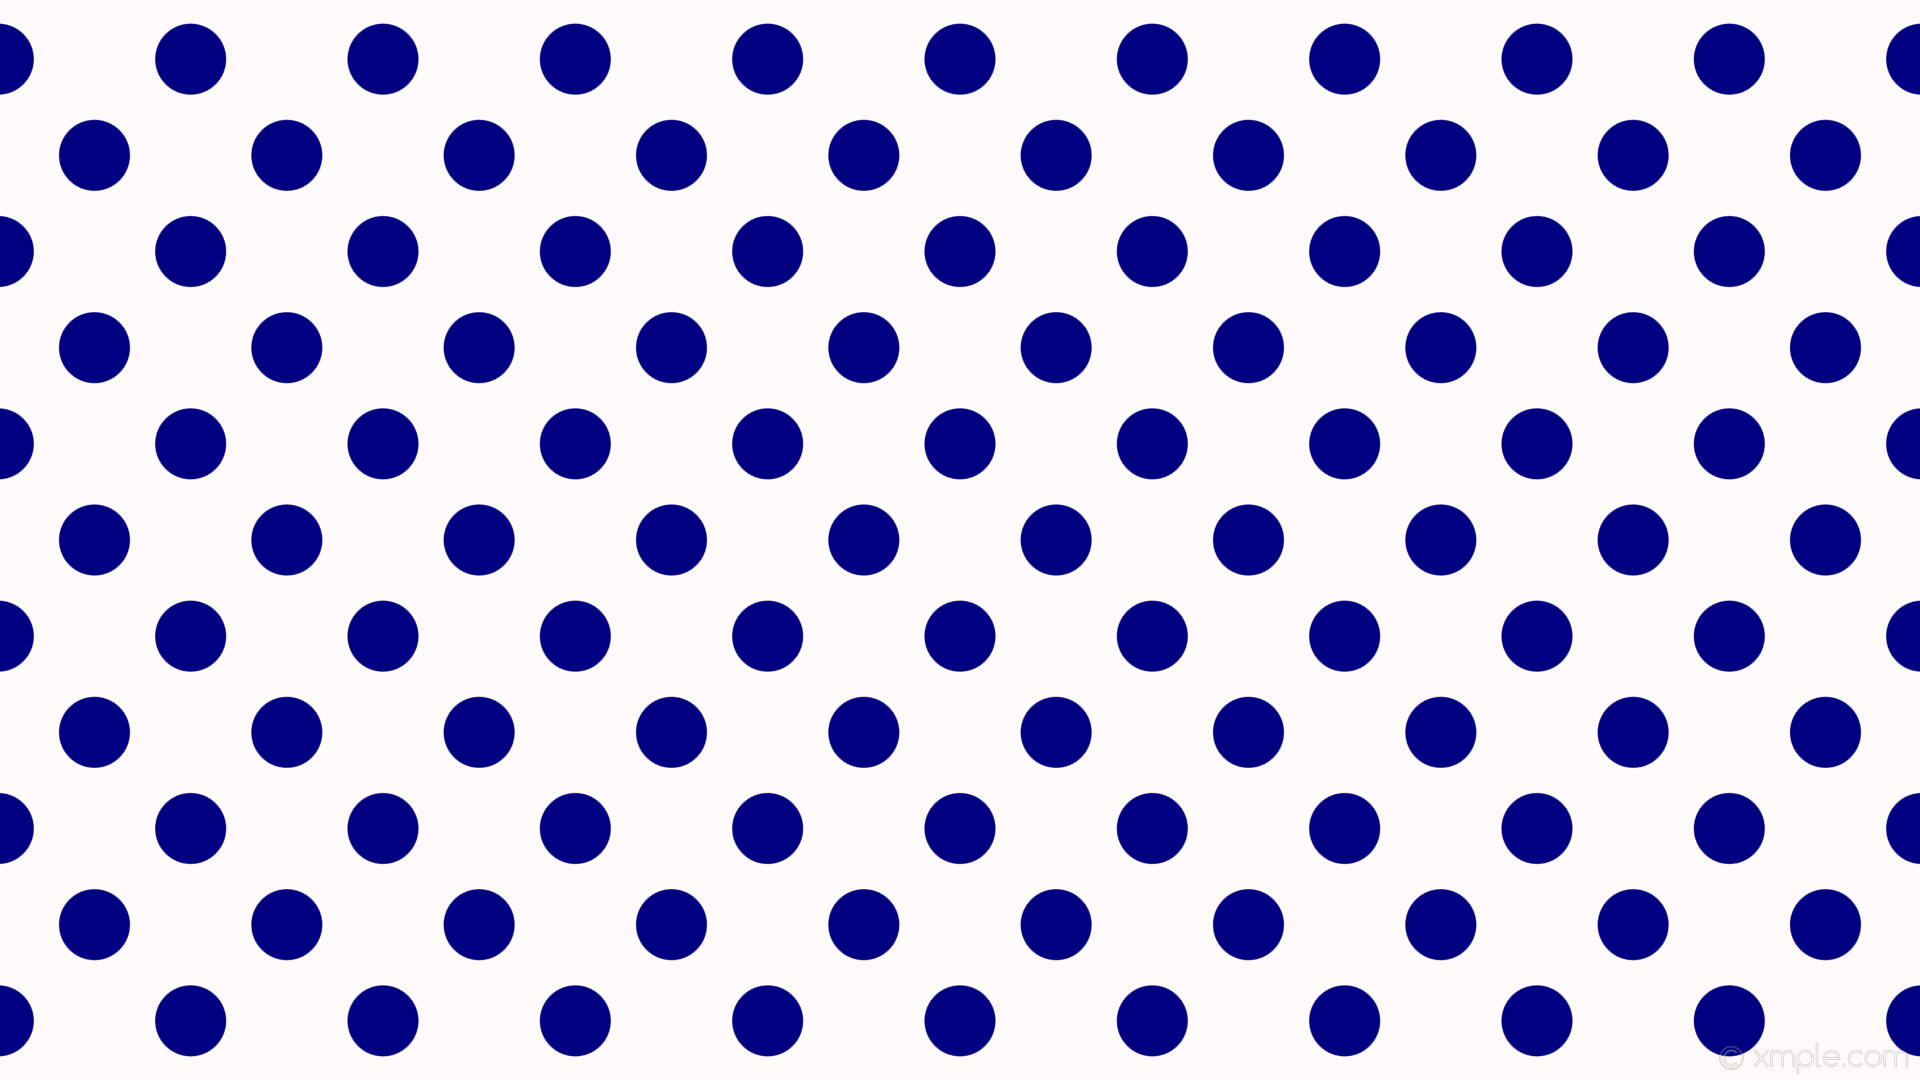 wallpaper spots polka dots white blue snow navy #fffafa #000080 135° 71px  136px